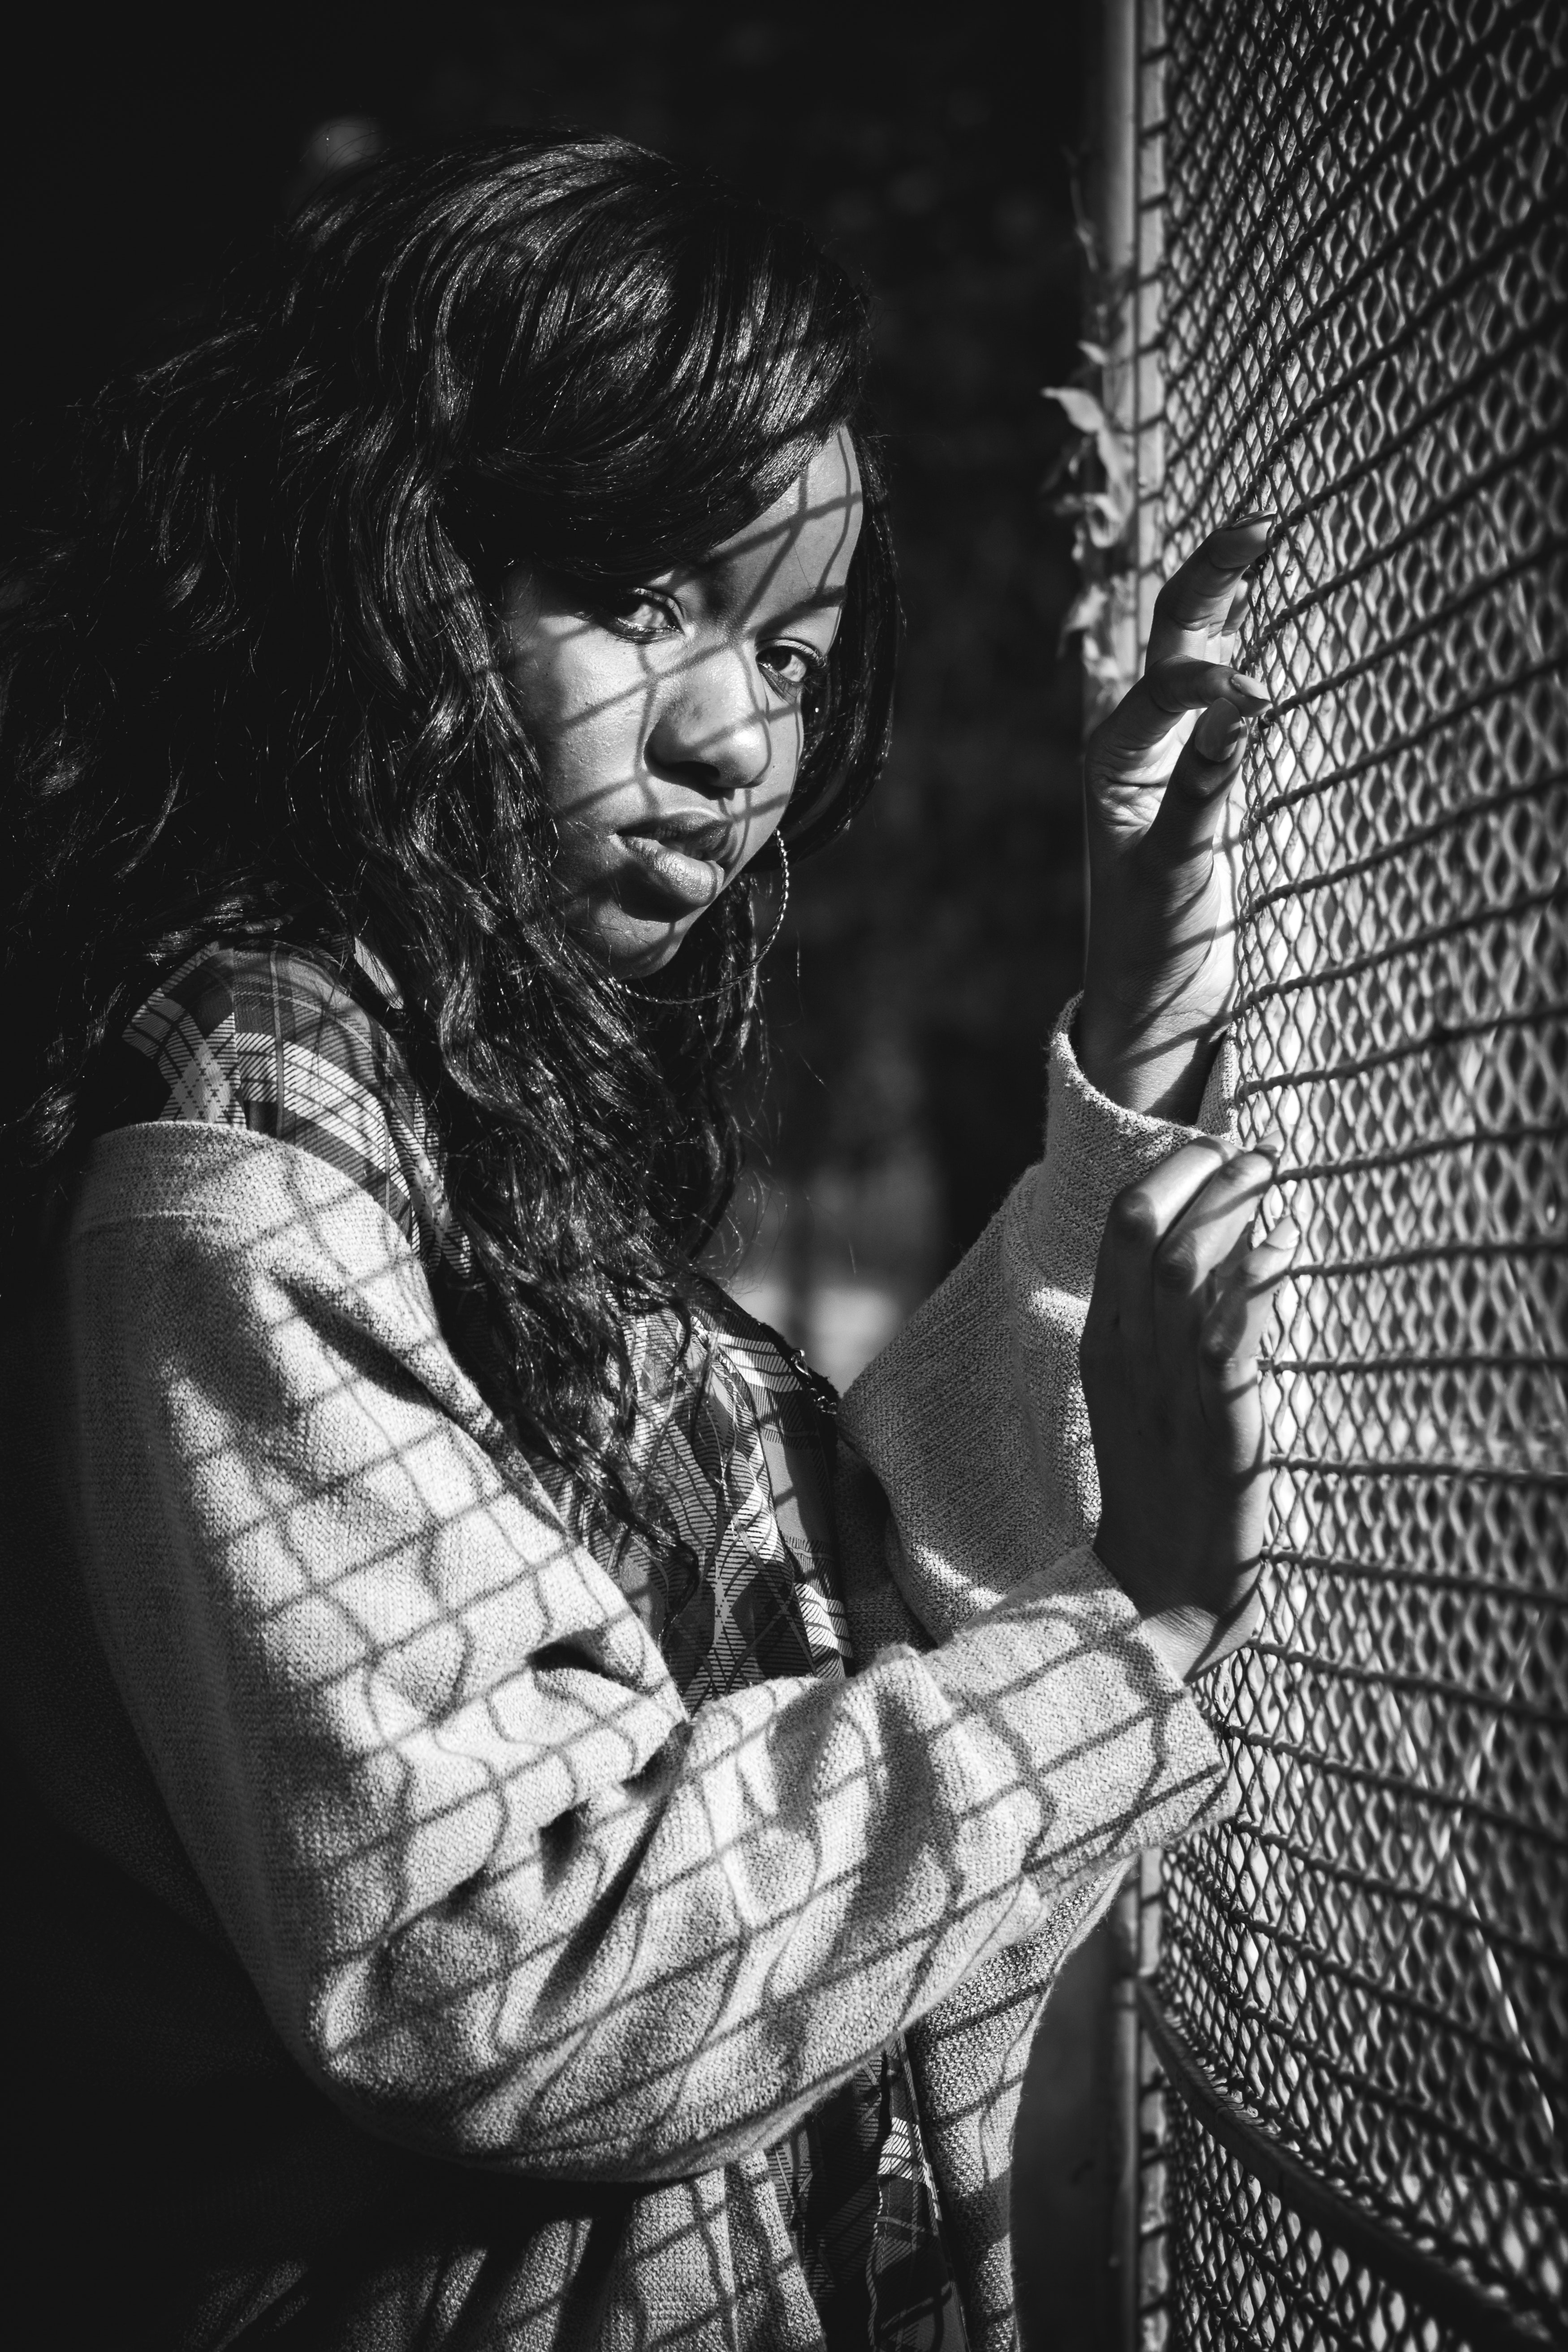 Grey Scale Photography of Woman Standing Against Mesh Grill, Shadow, Recreation, Portrait, Side view, HQ Photo